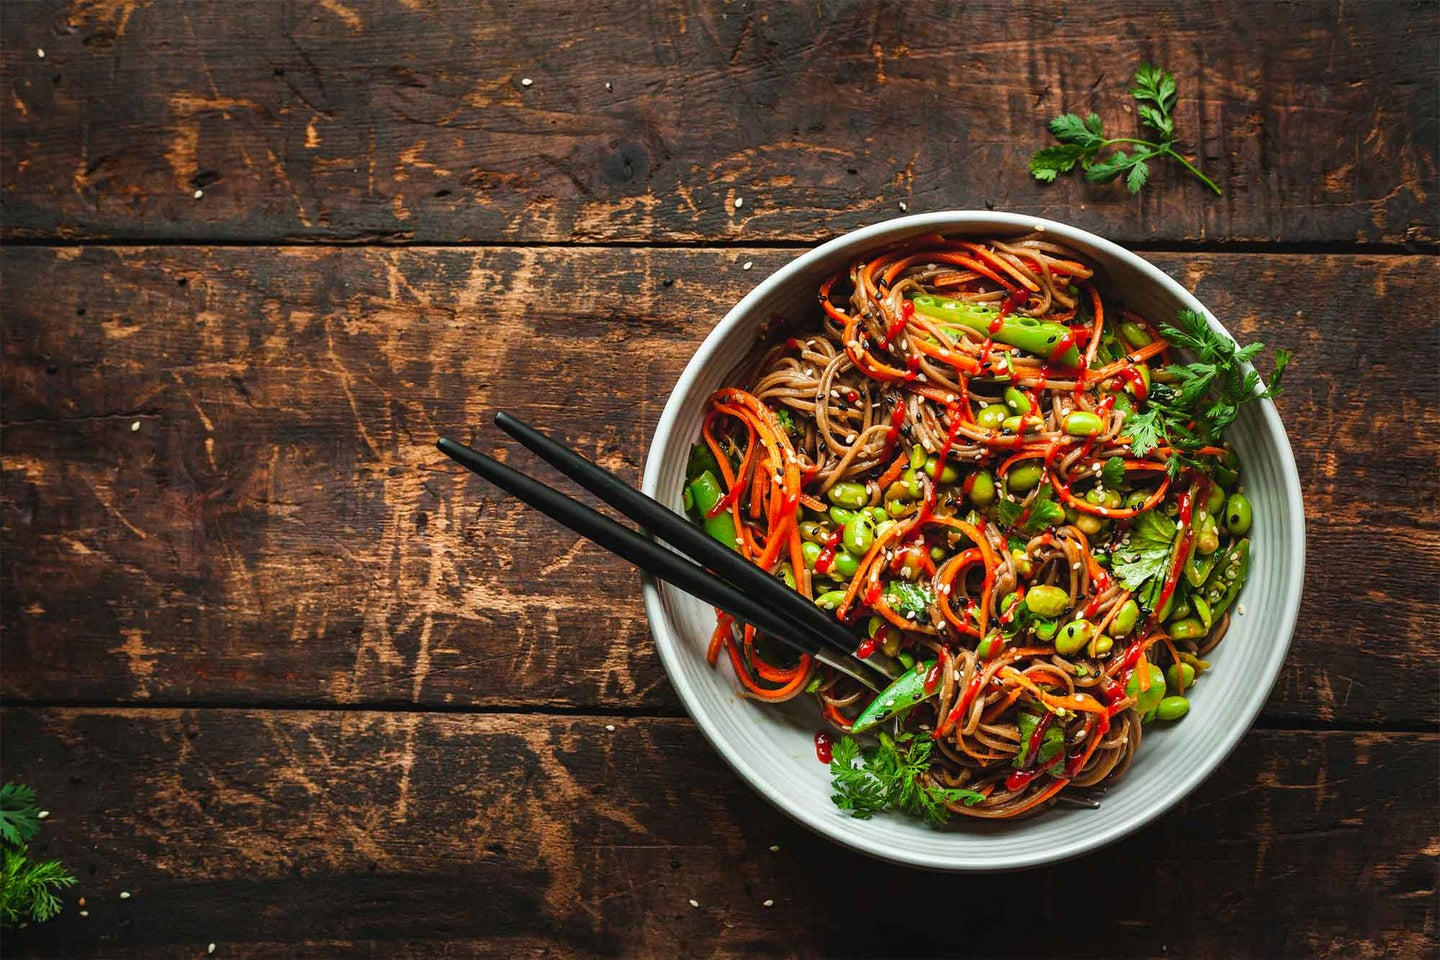 Bowl of noodles and vegetables with chopsticks